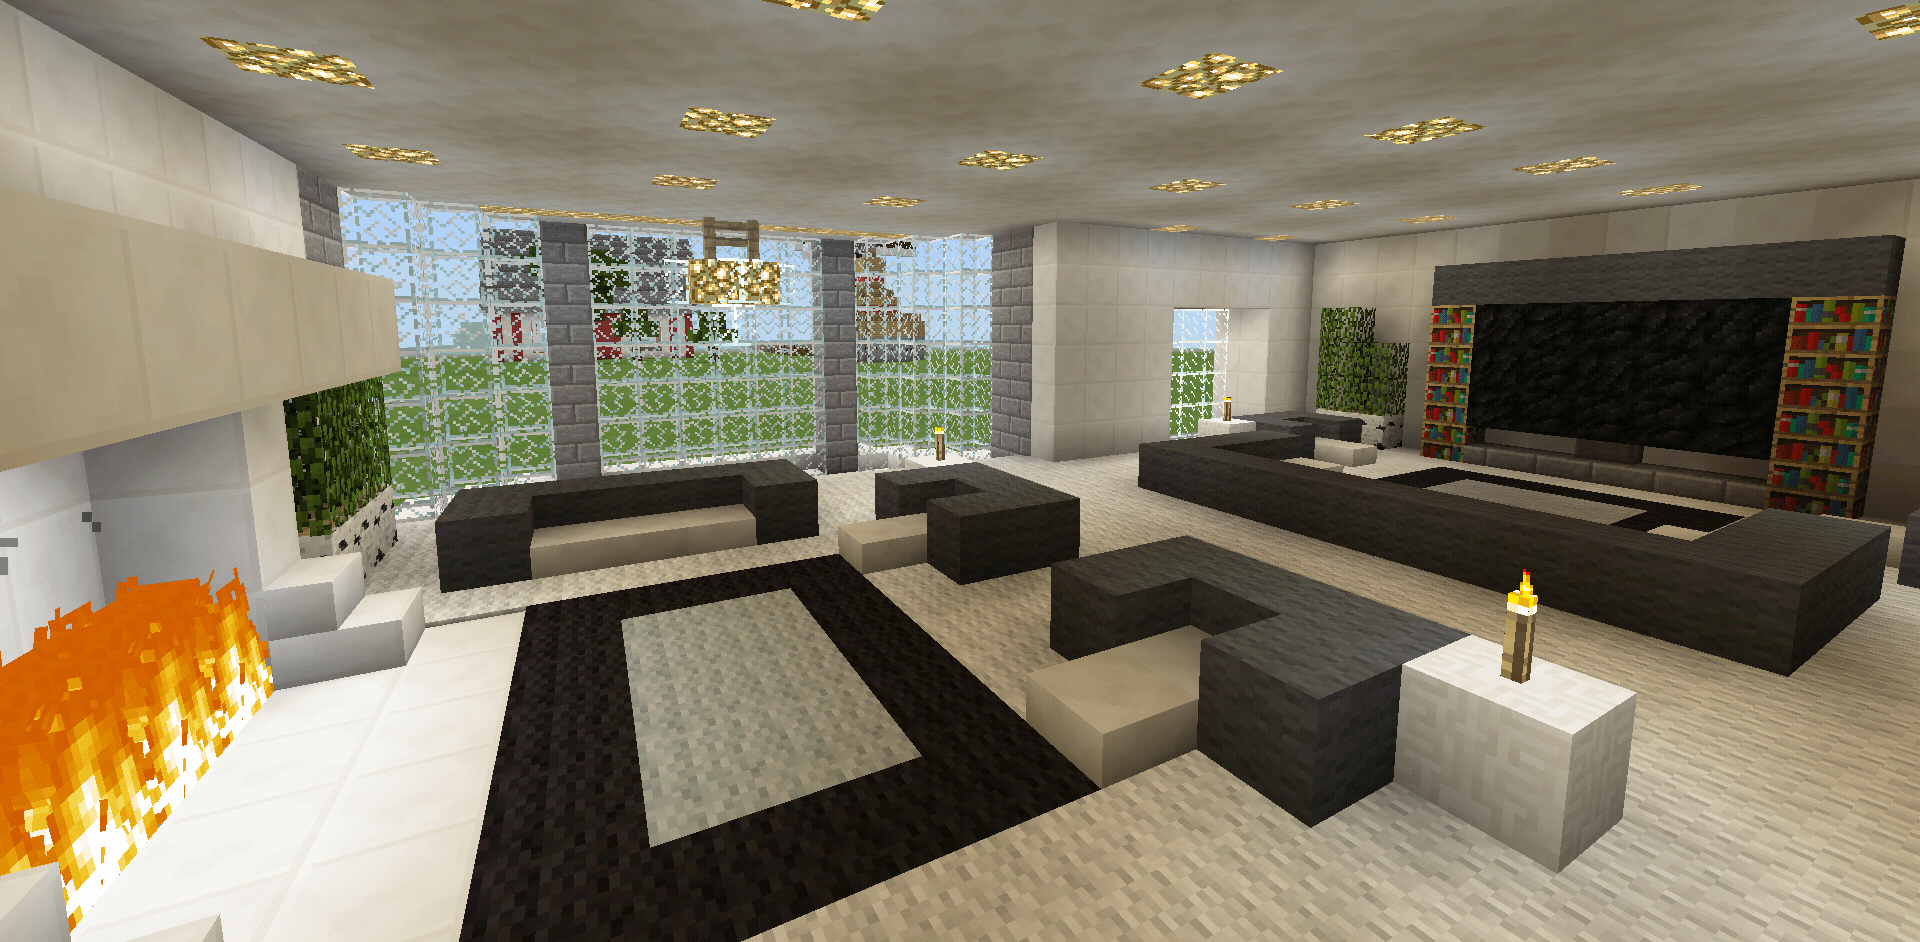 Minecraft Salon Moderne Minecraft Family Living Room And Fireplace Couch Chair Tv